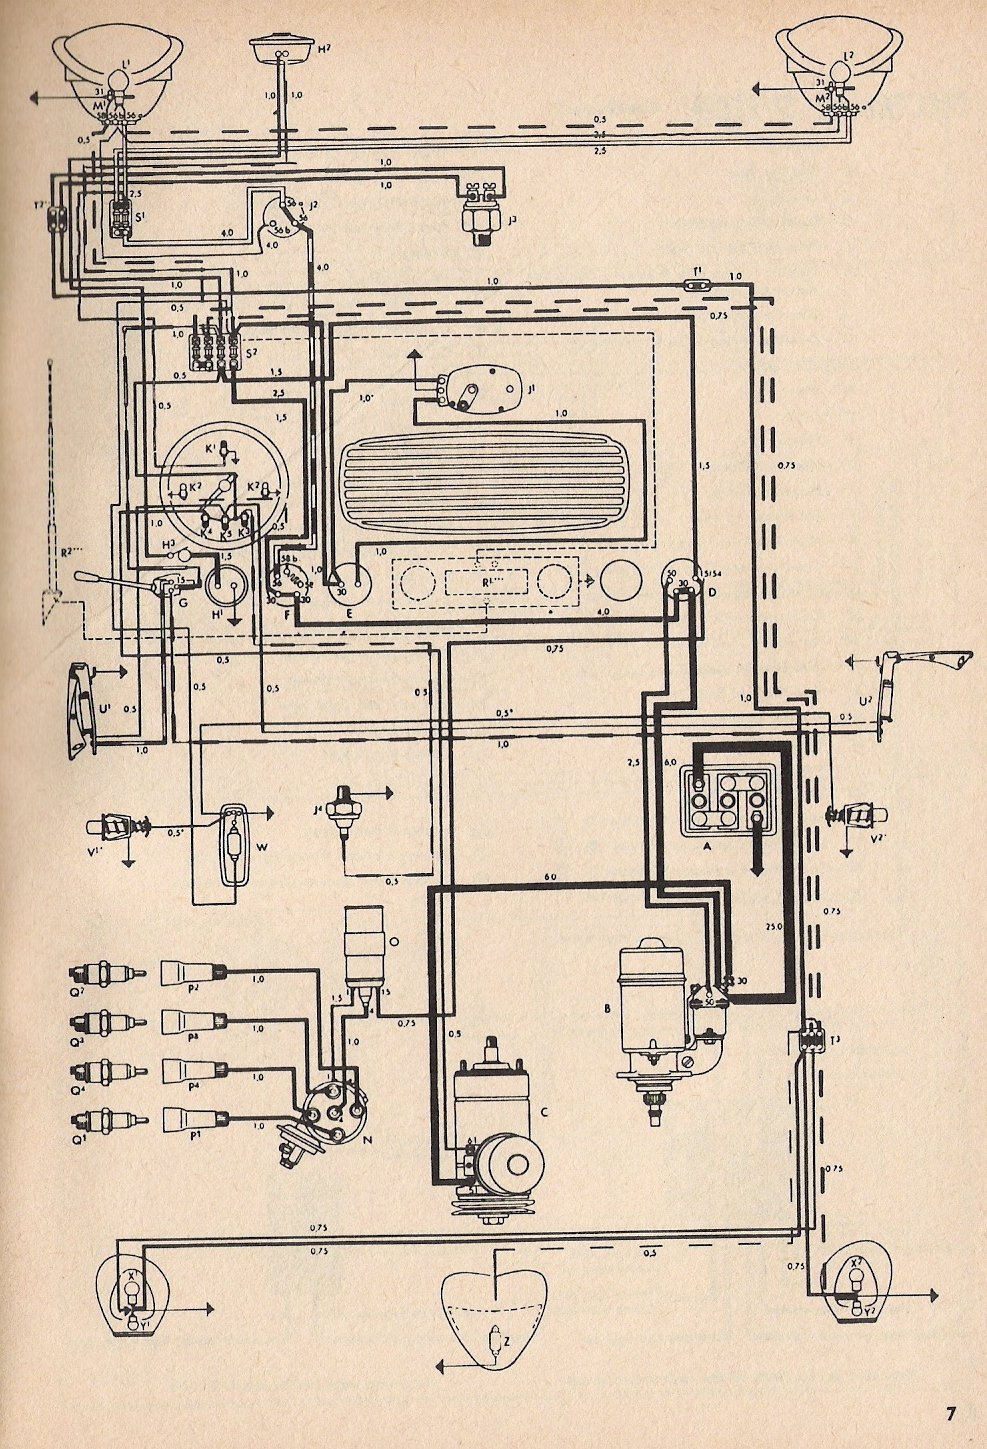 bug_54 thesamba com type 1 wiring diagrams 1970 vw beetle wiring harness at n-0.co